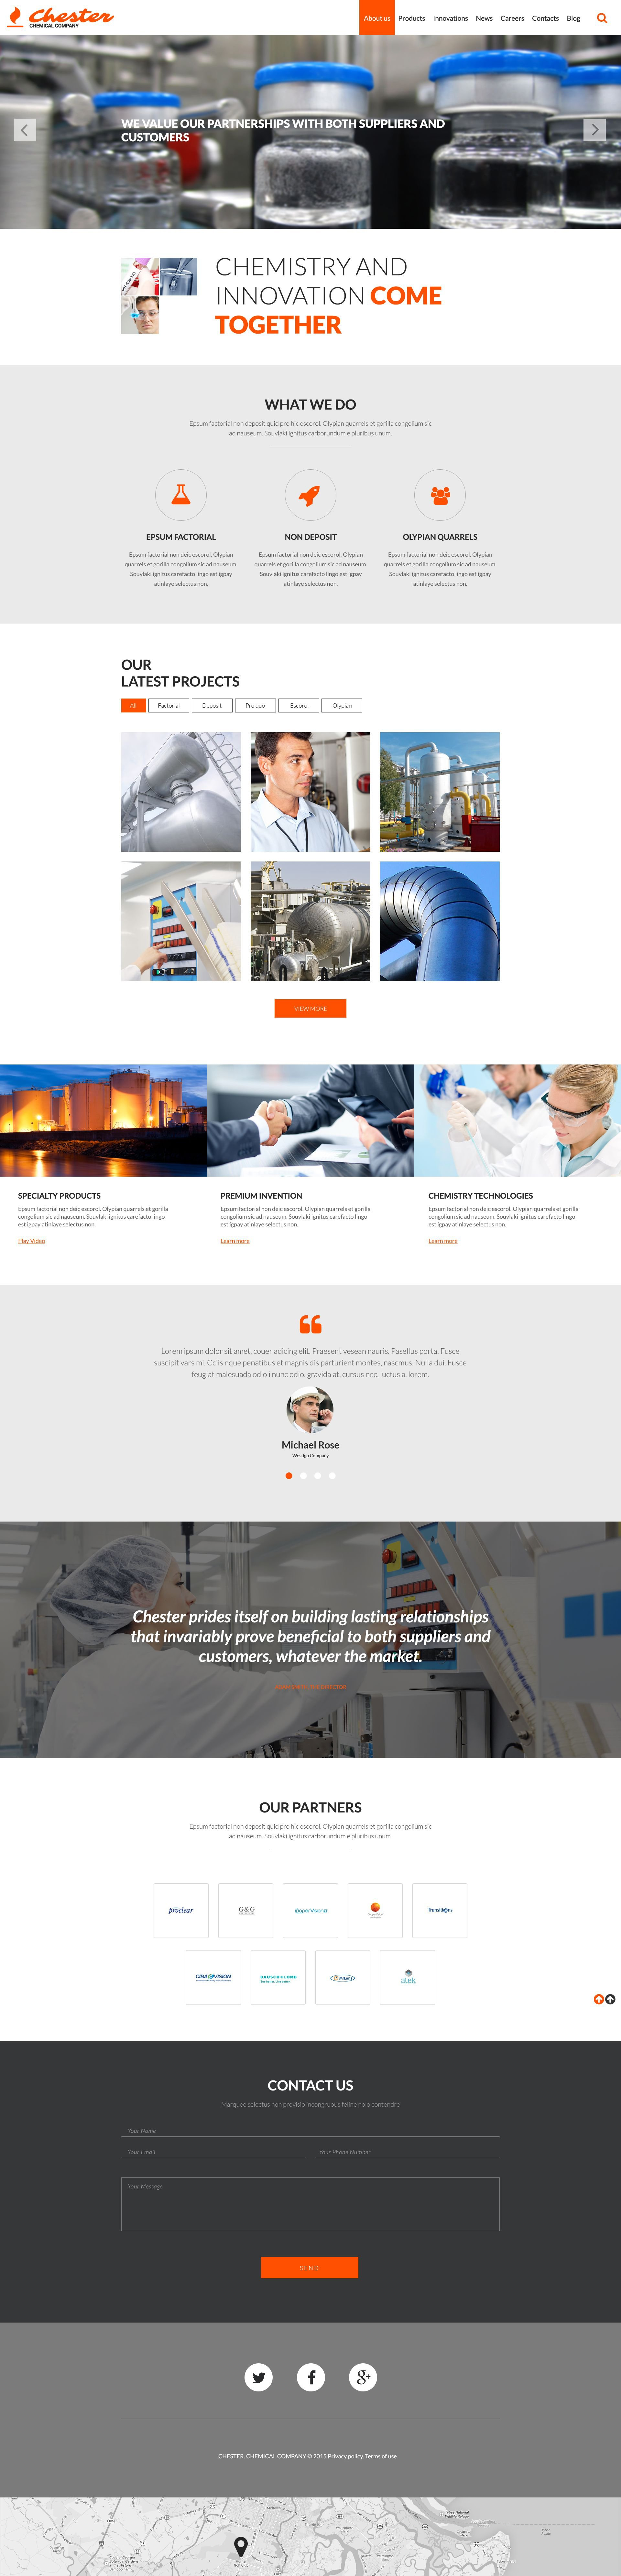 Chemical Company Website Template